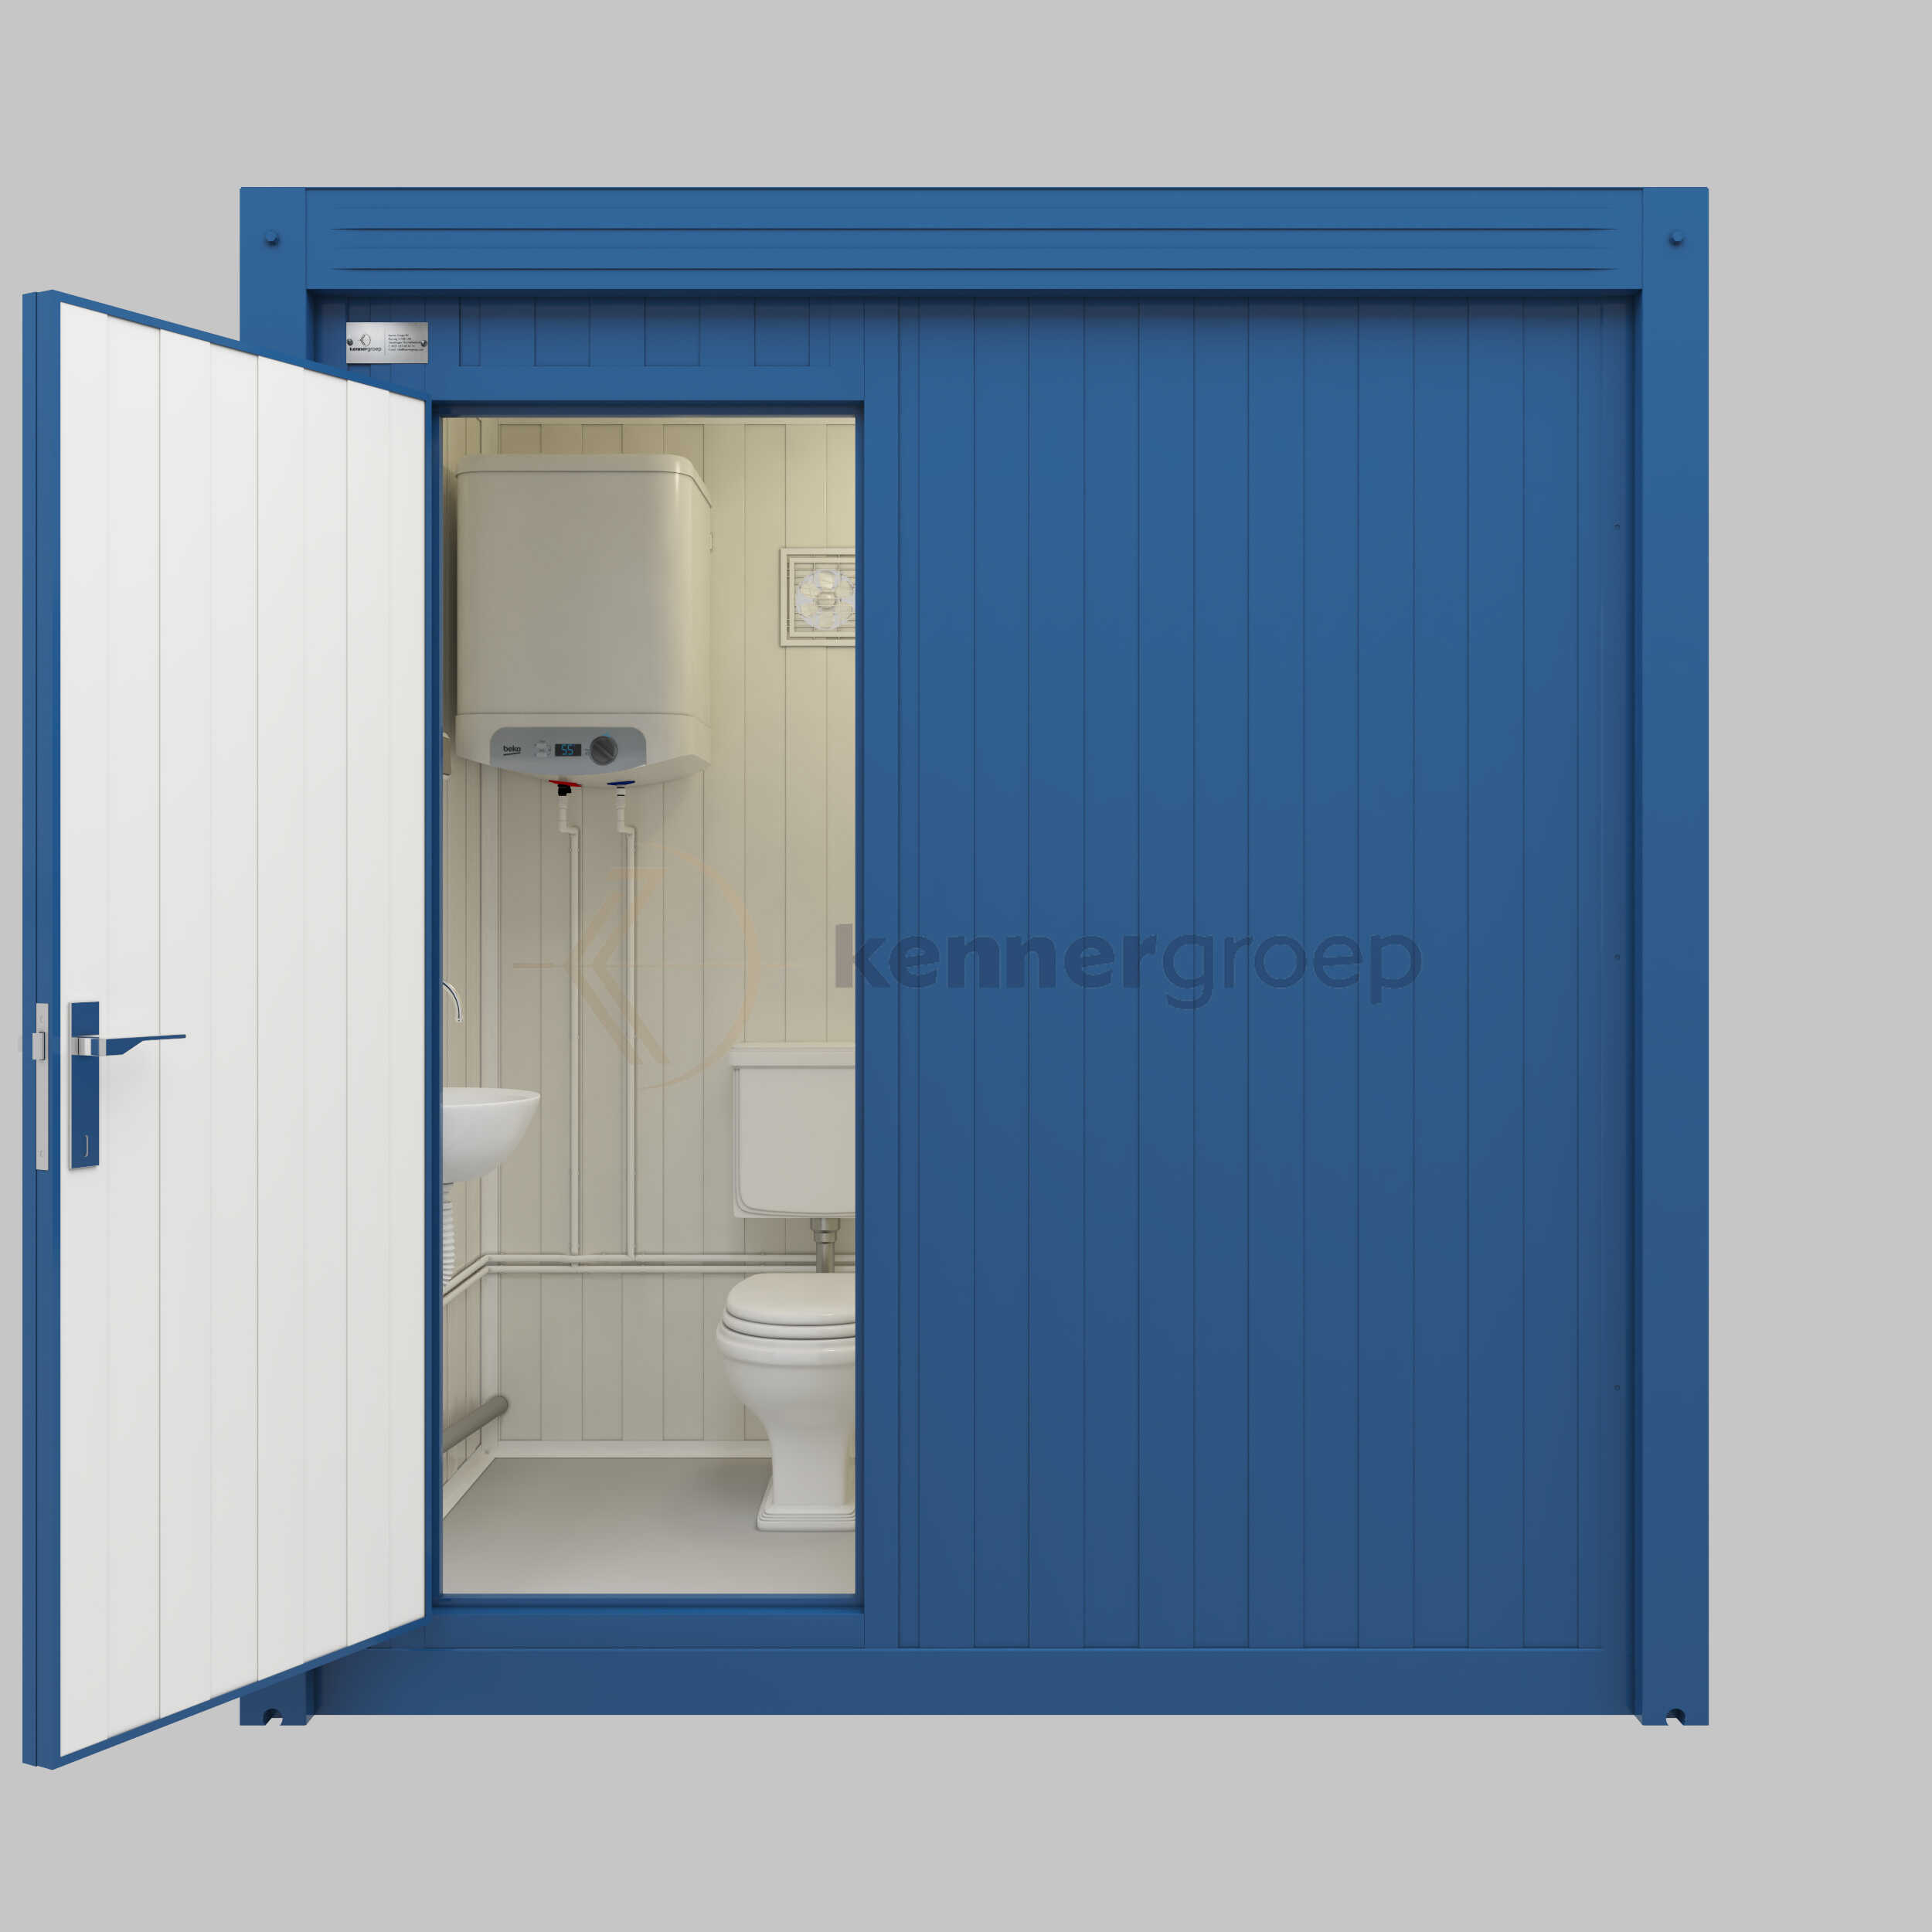 Sanitair Combi Unit Toilet En Douche